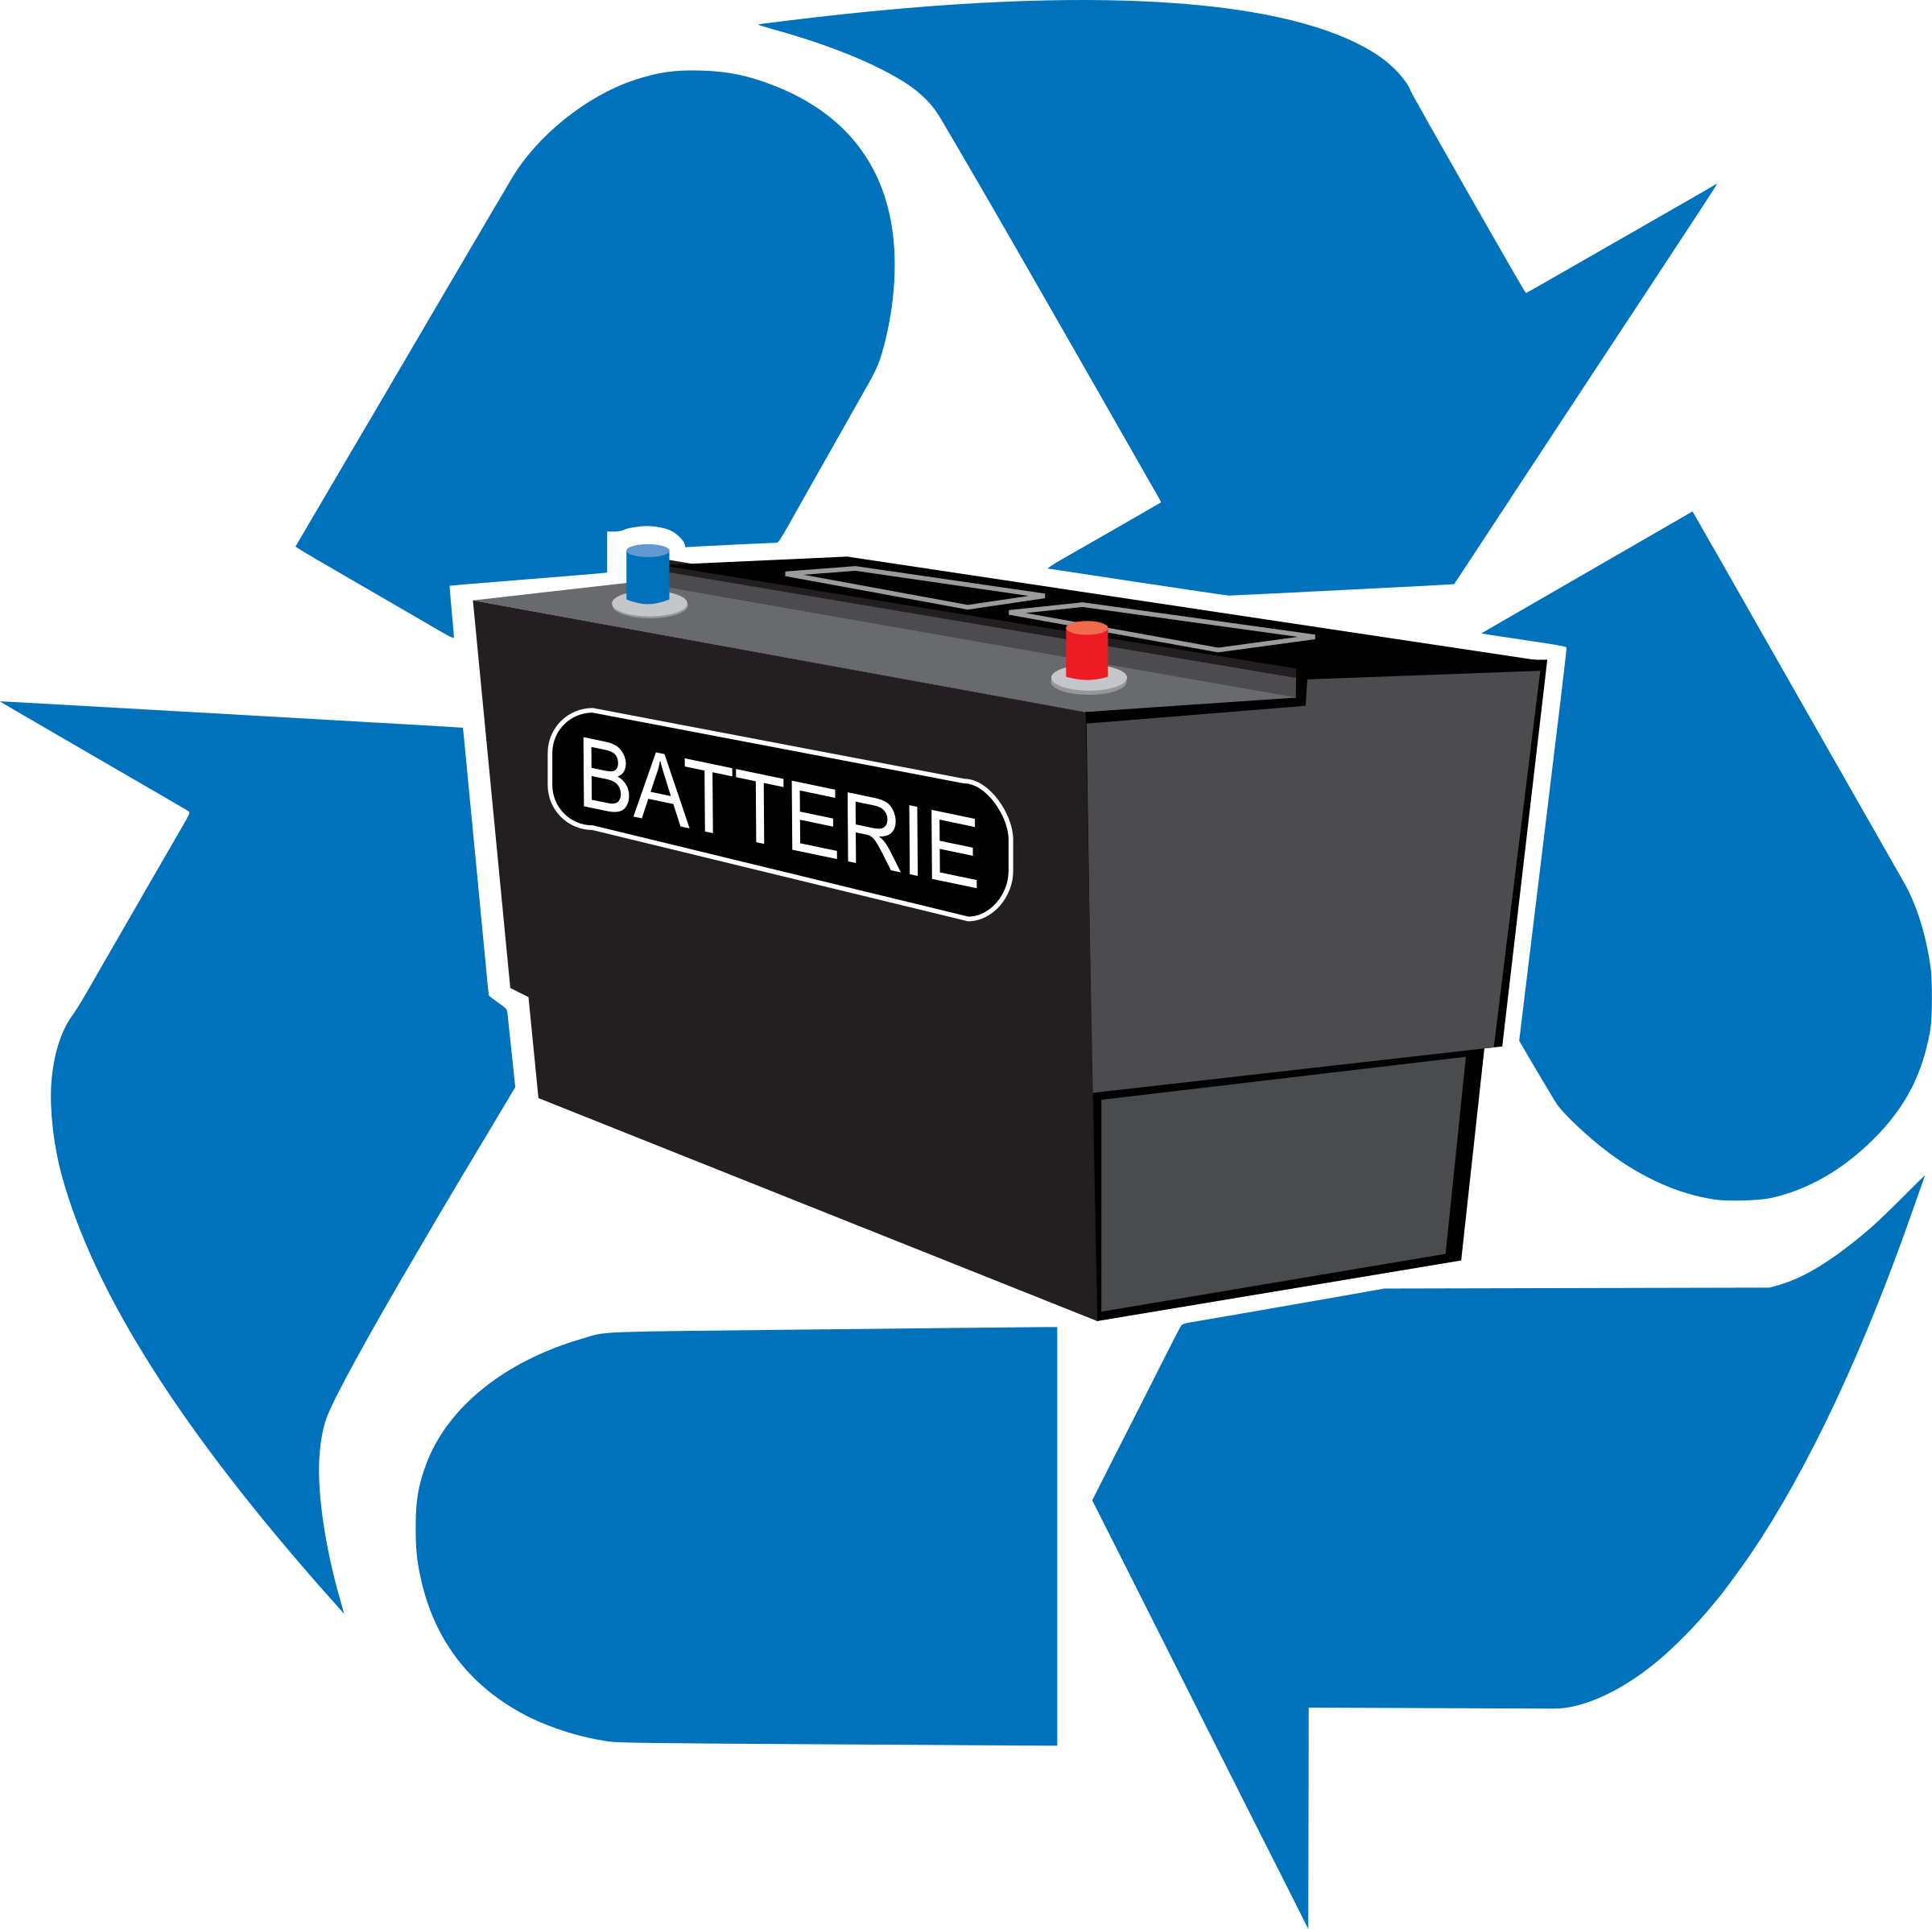 Car battery clipart png transparent library Clipart - recyclage batterie png transparent library